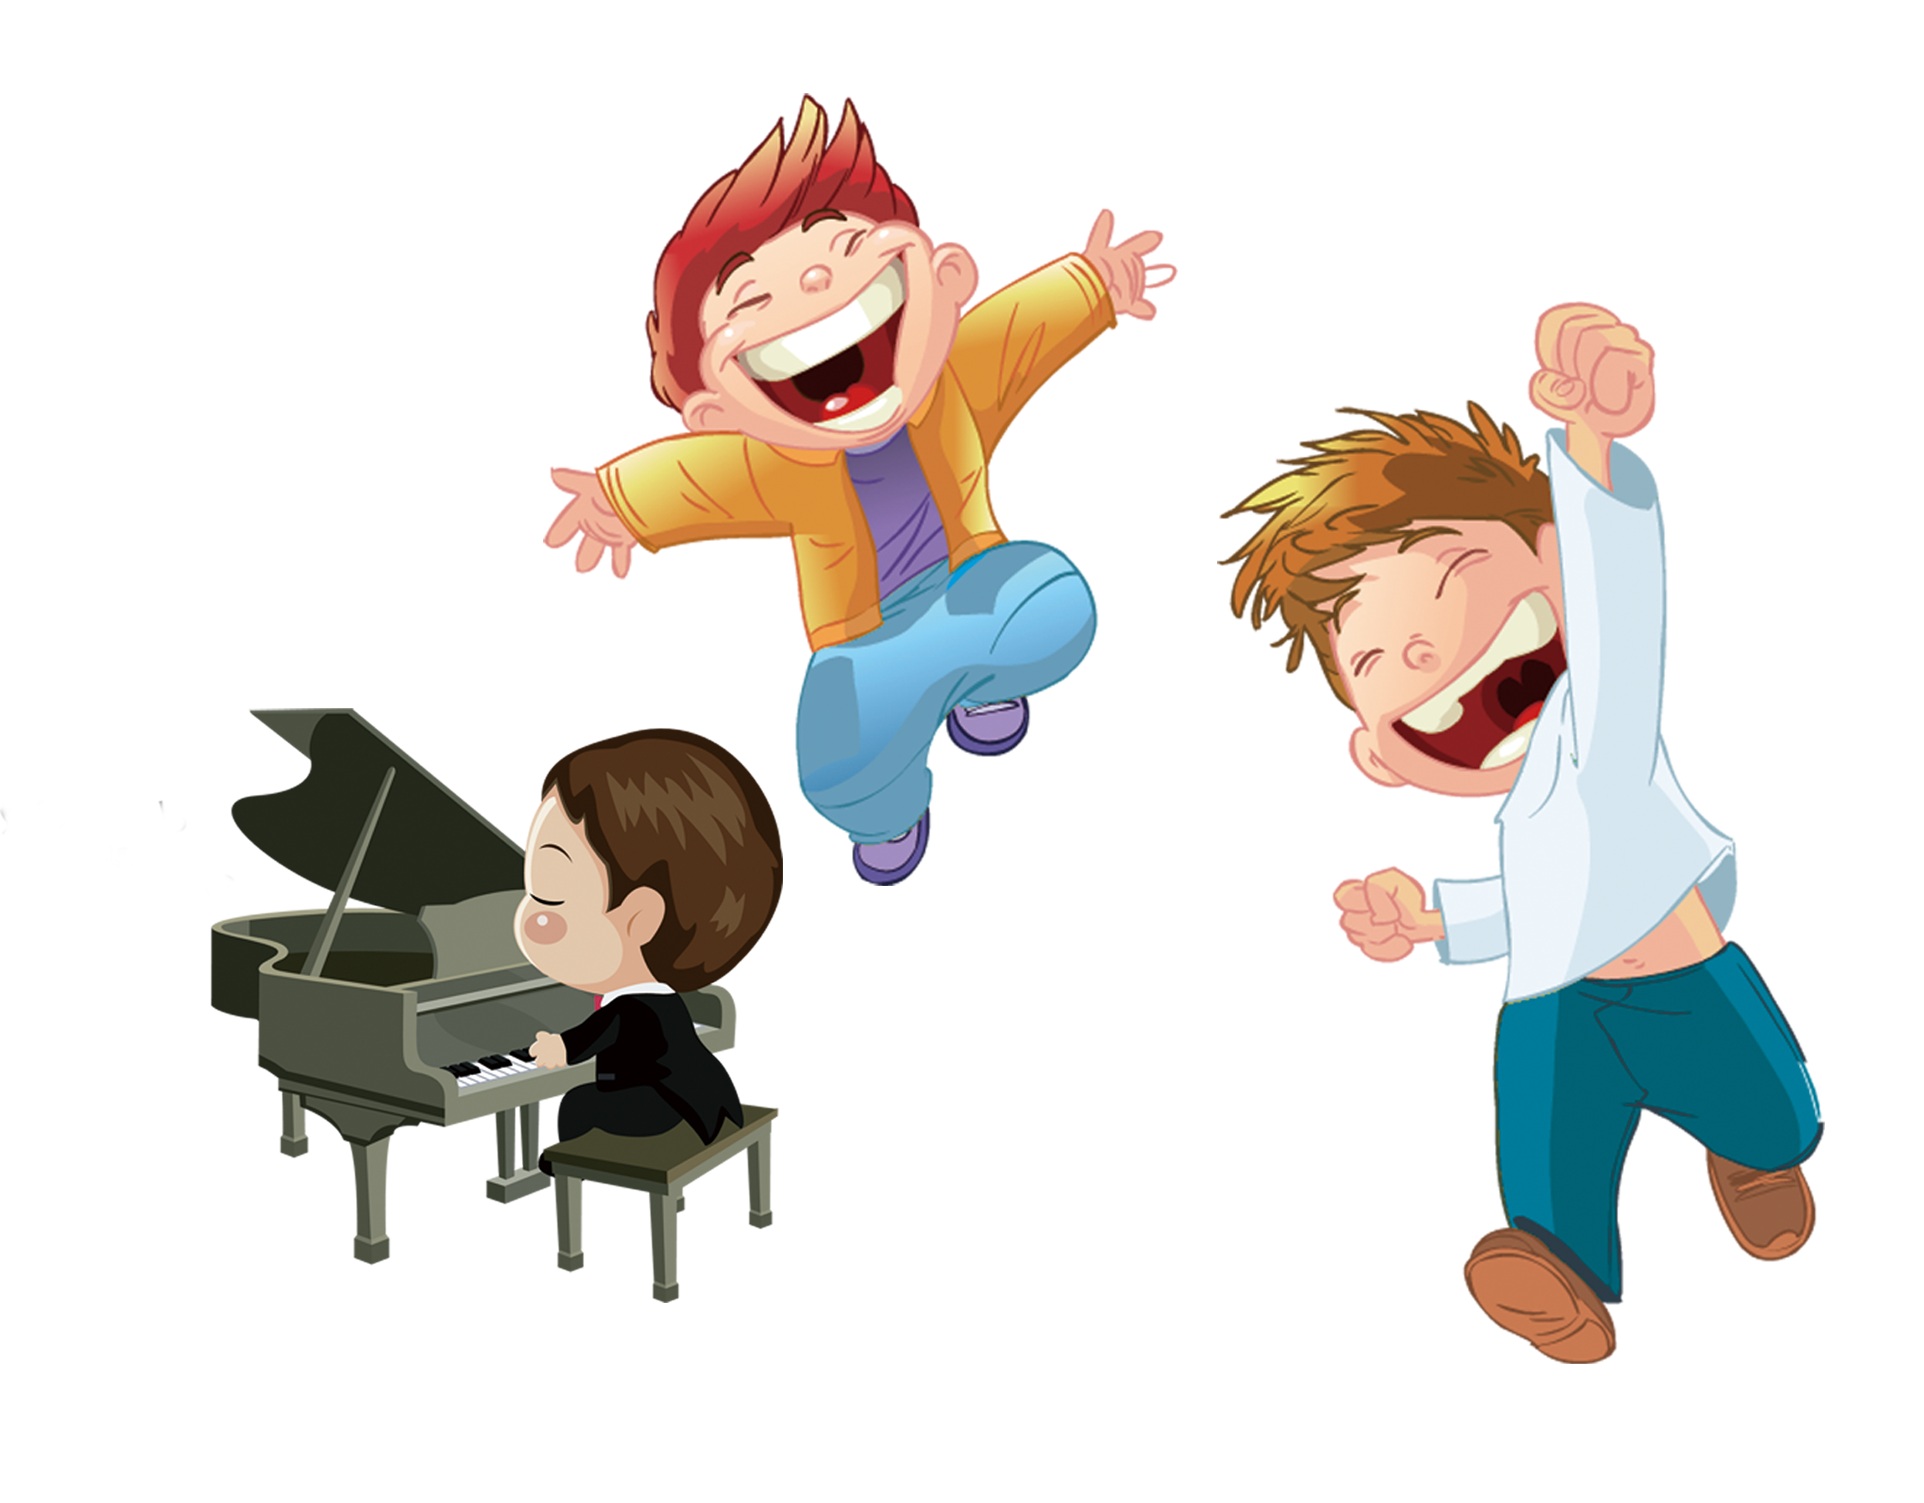 Animated child png. Cartoon illustrator hip hop